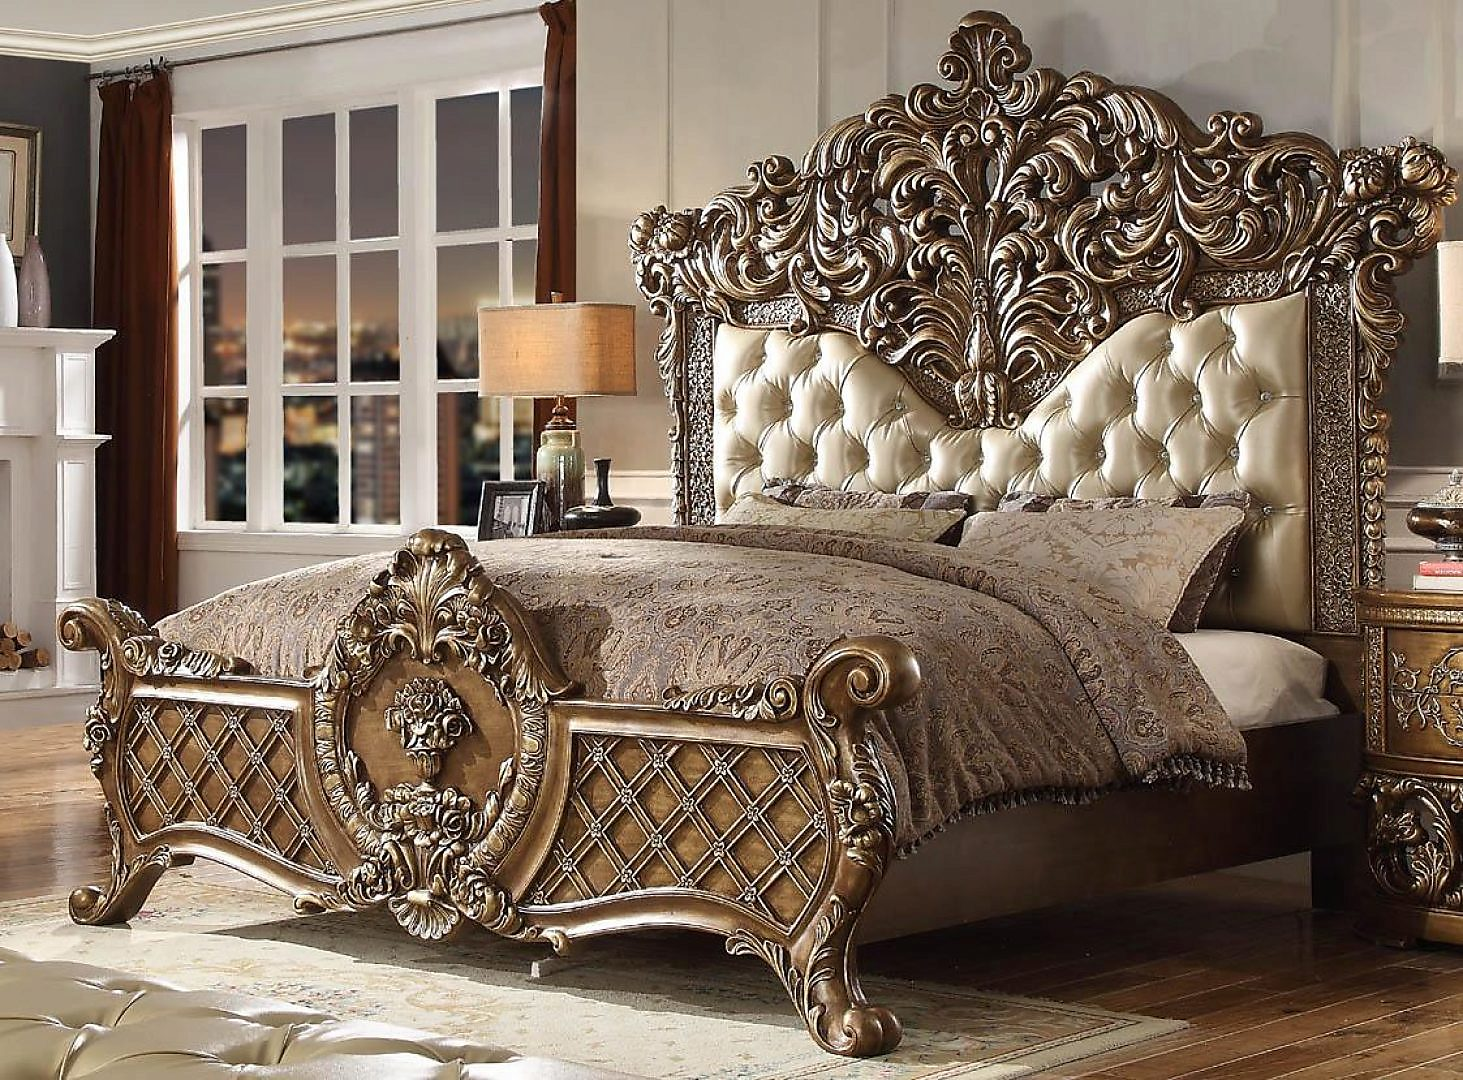 Traditional Classic Pearl HD-8018 King Bed by Homey Design